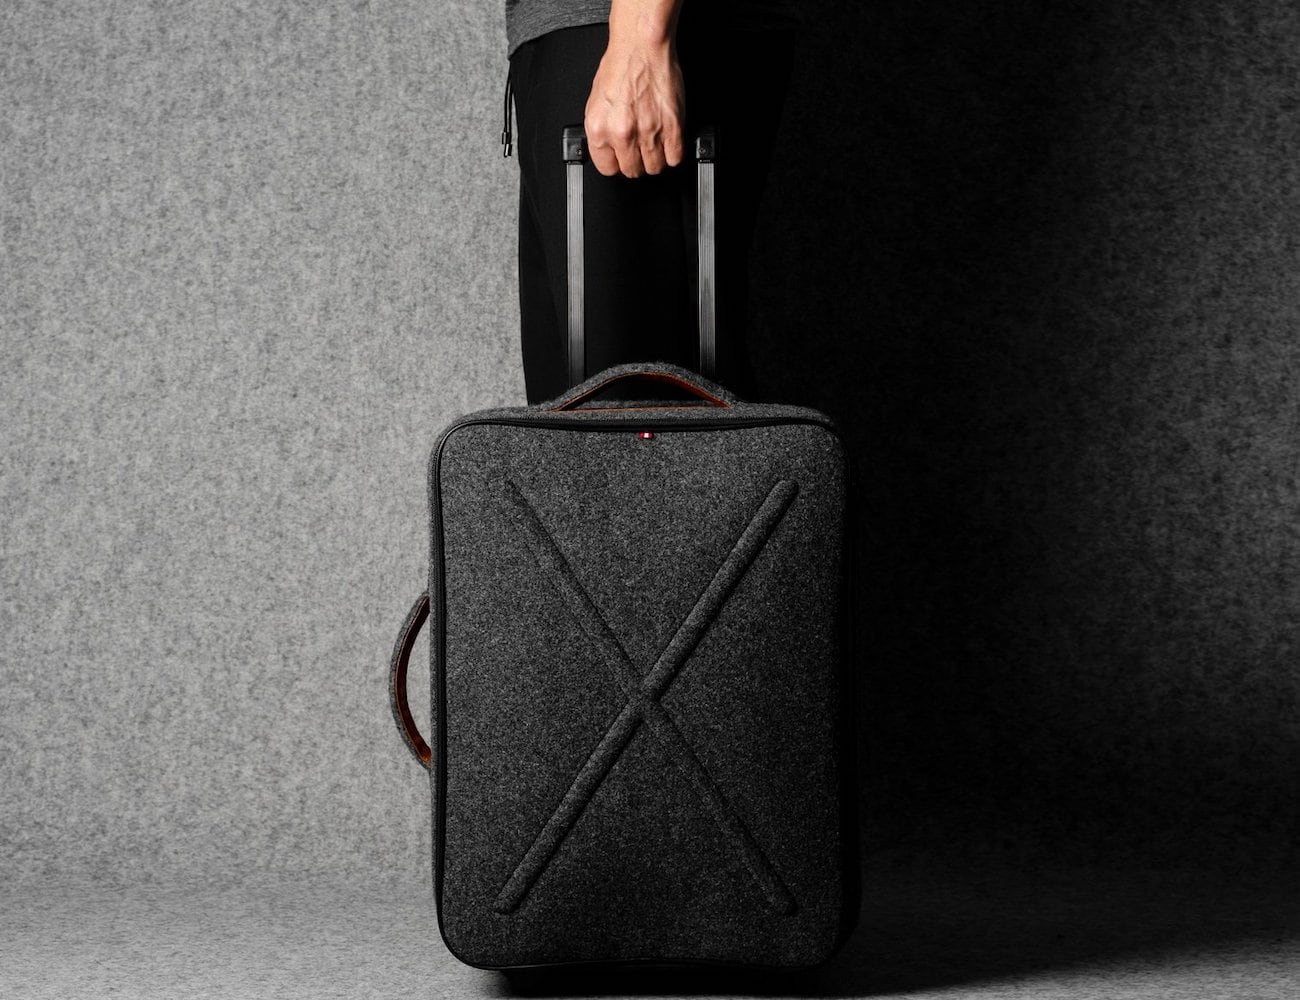 hardgraft Worldly Cabin Suitcase adds style to your trip